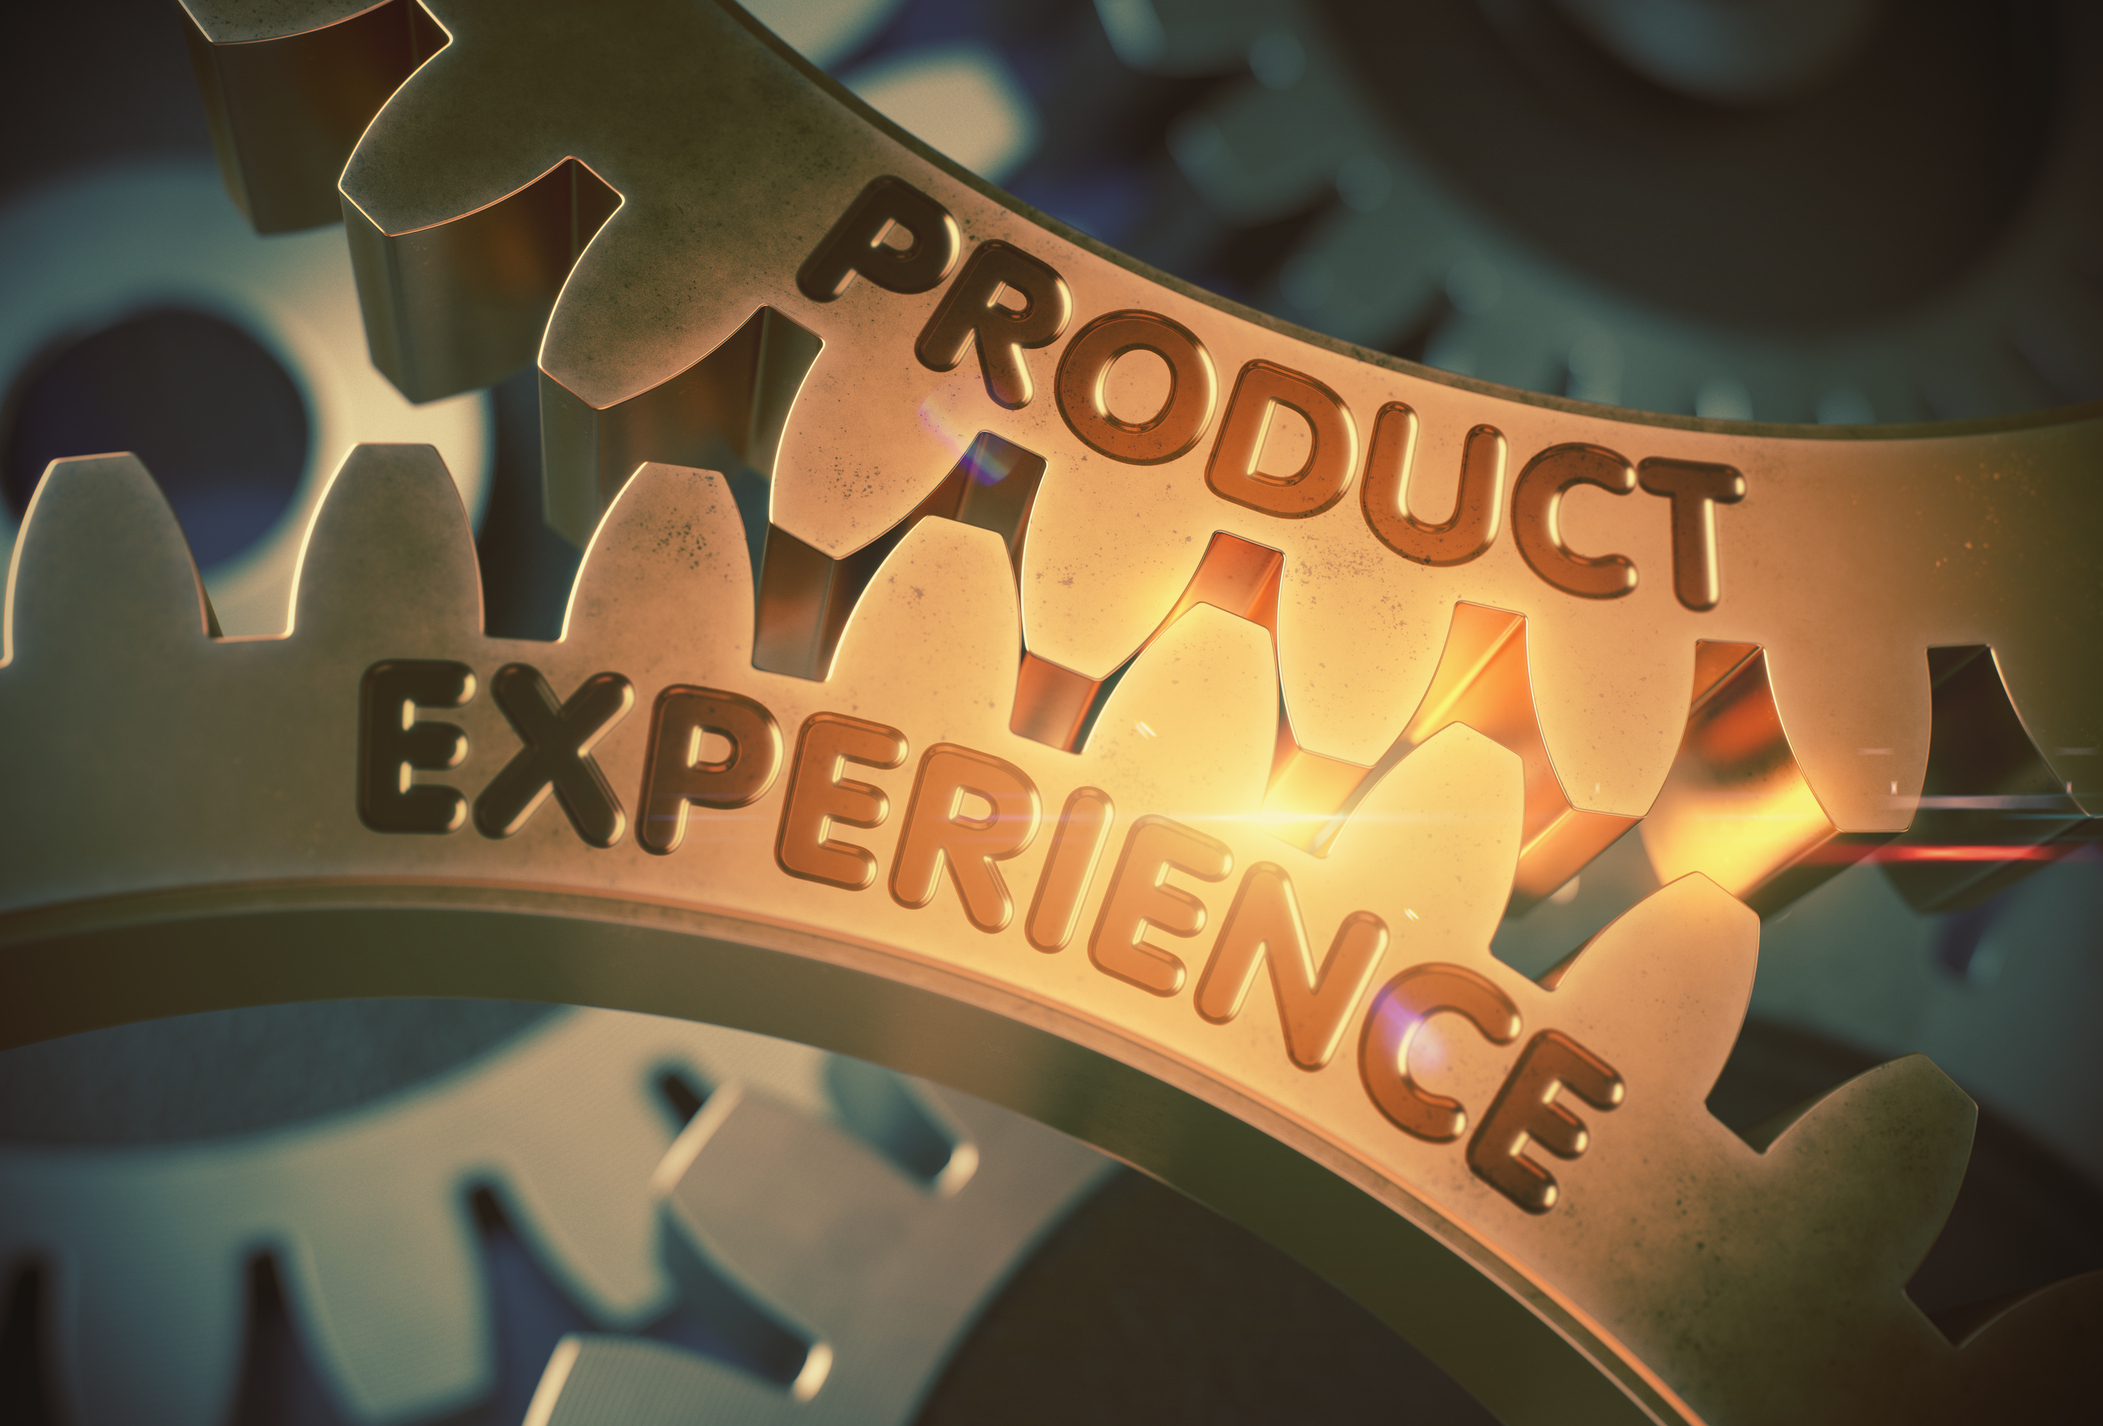 product vs experience